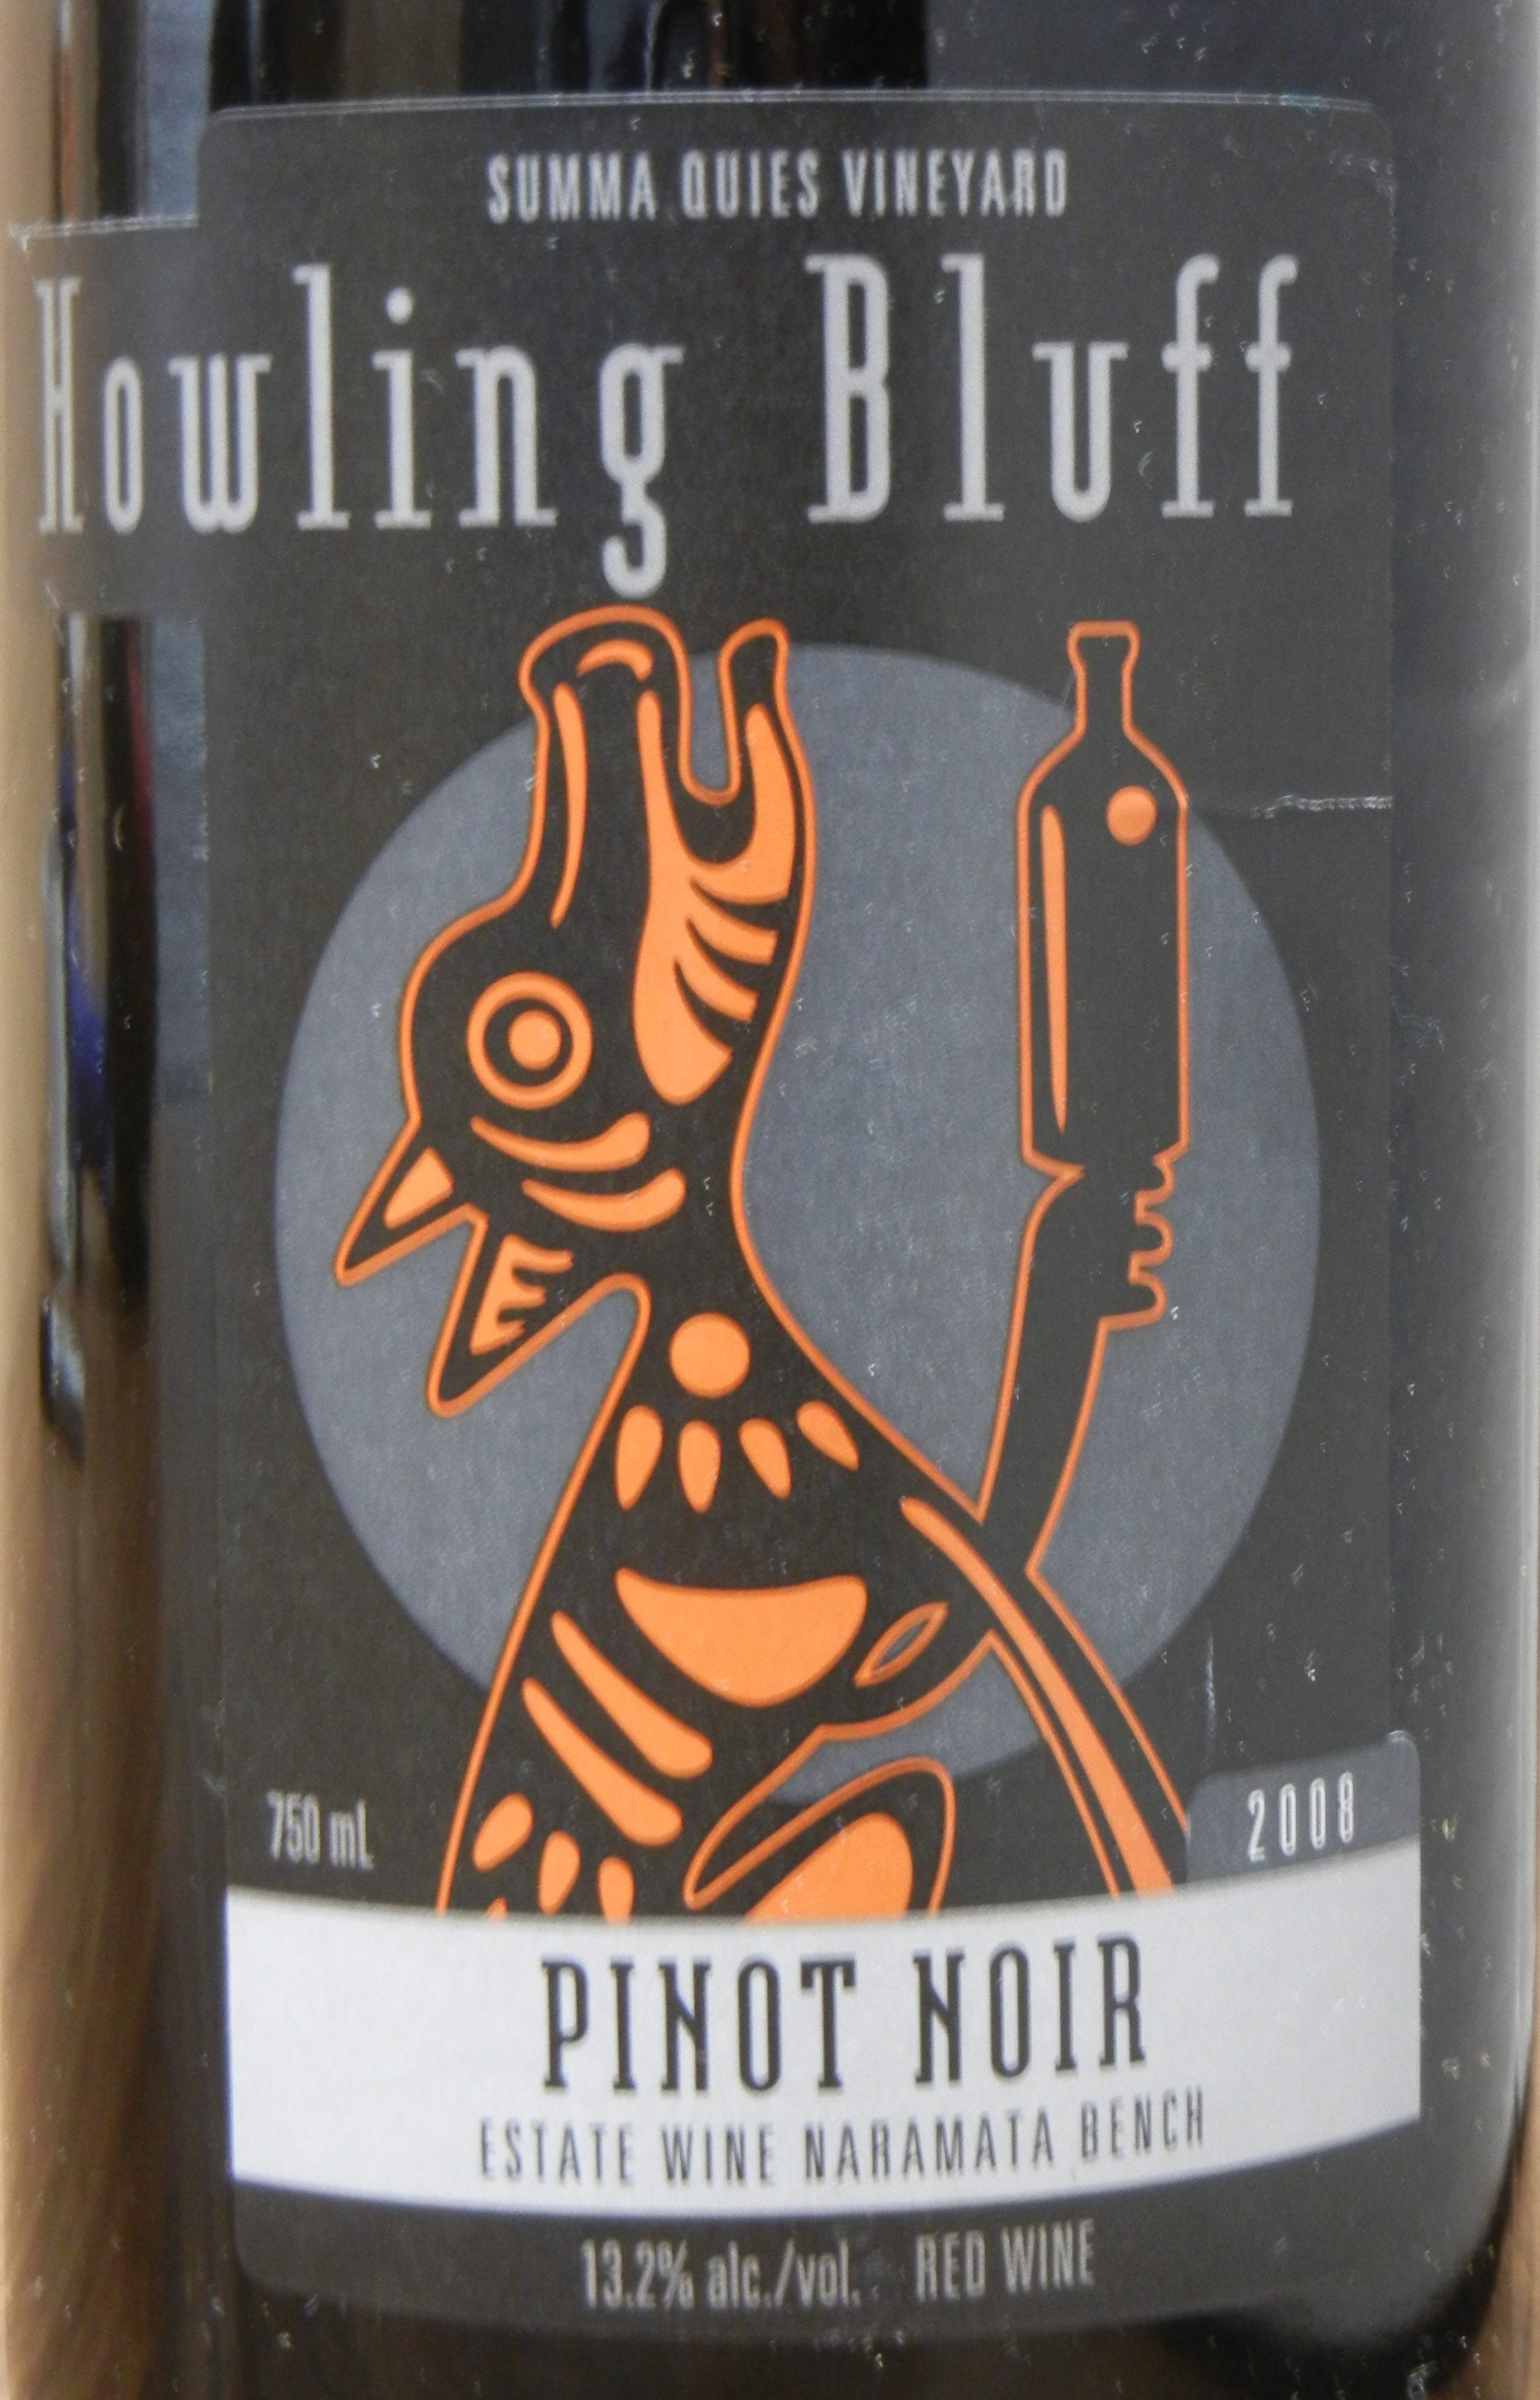 Howling Bluff Summa Quies Pinot Noir 2008 Label - BC Pinot Noir Tasting Review 4